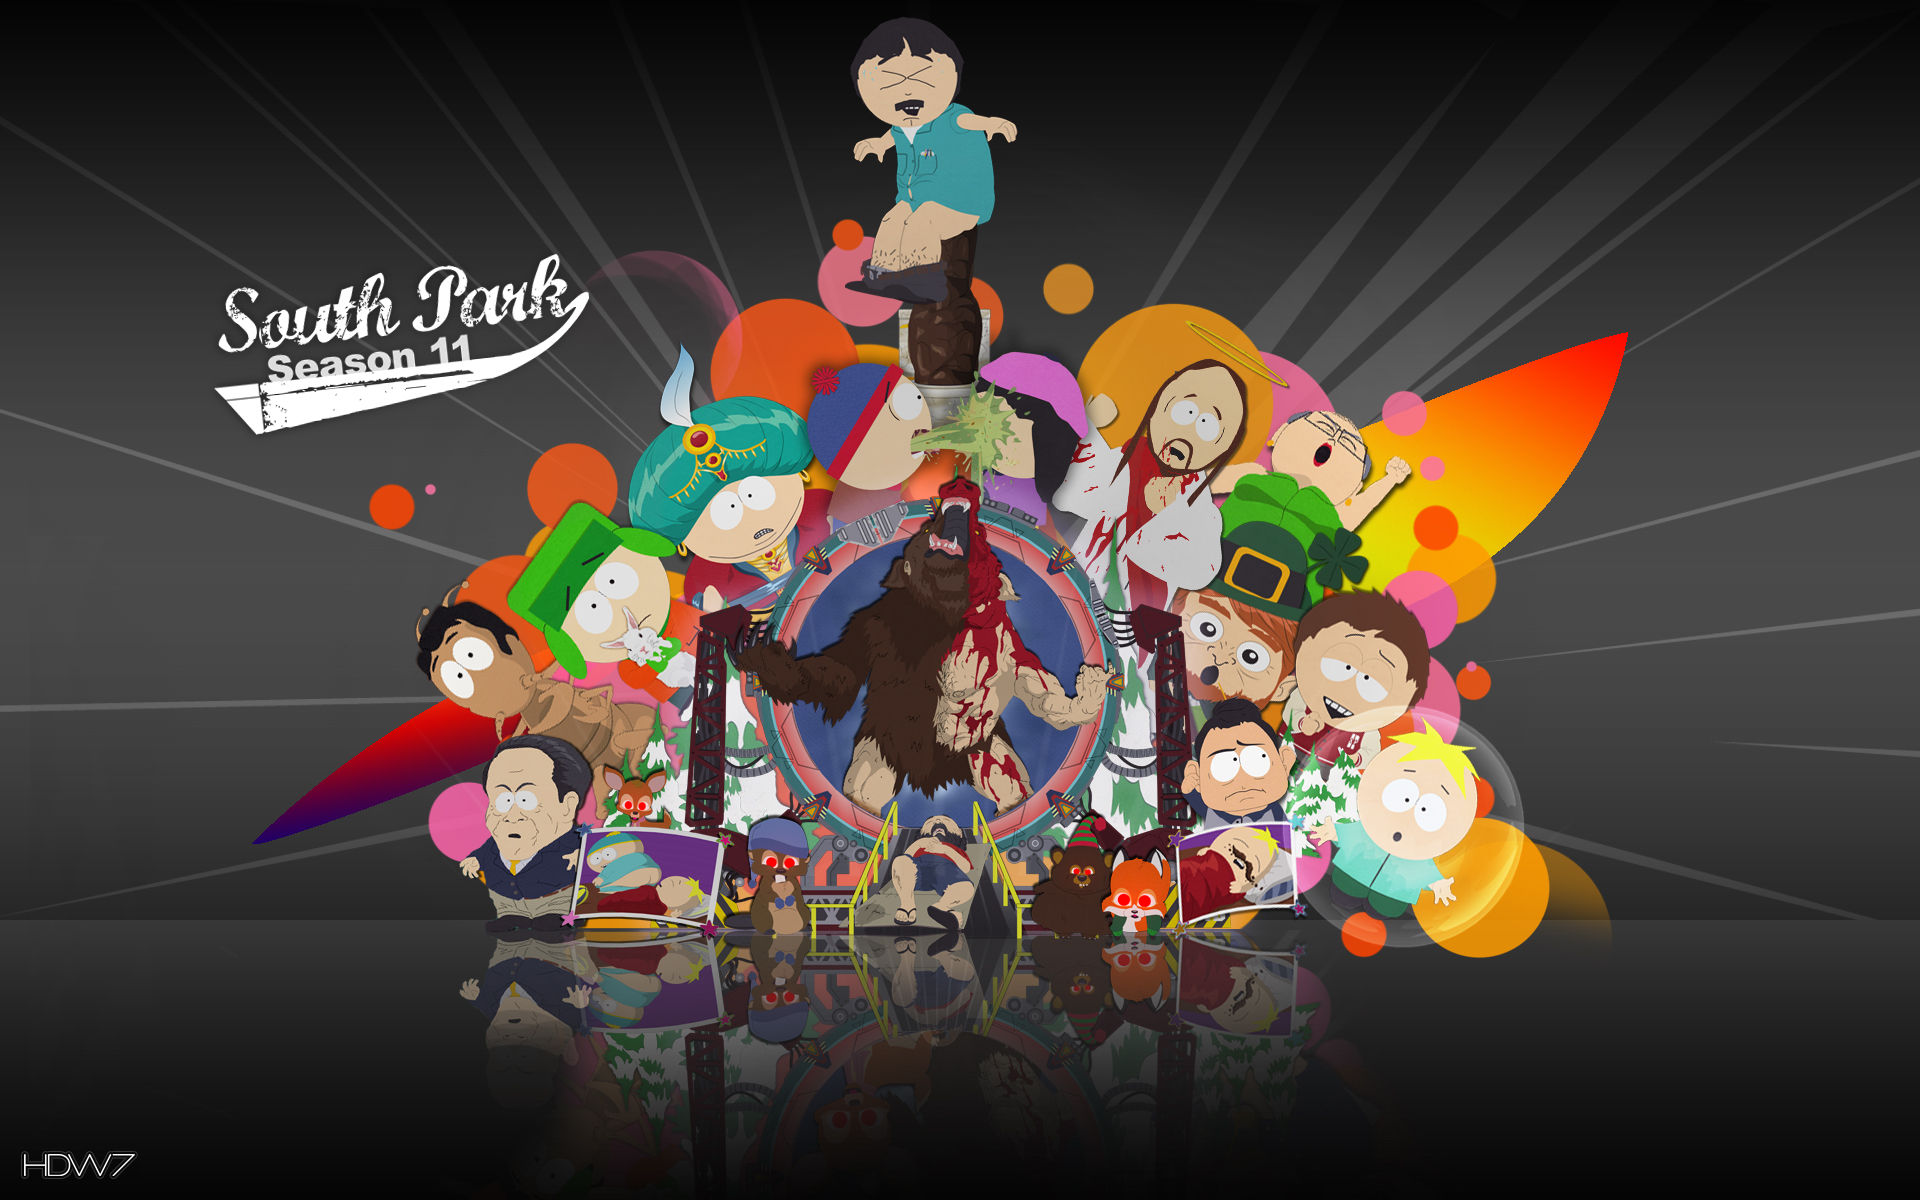 season 11 collage south park | hd wallpaper gallery #75